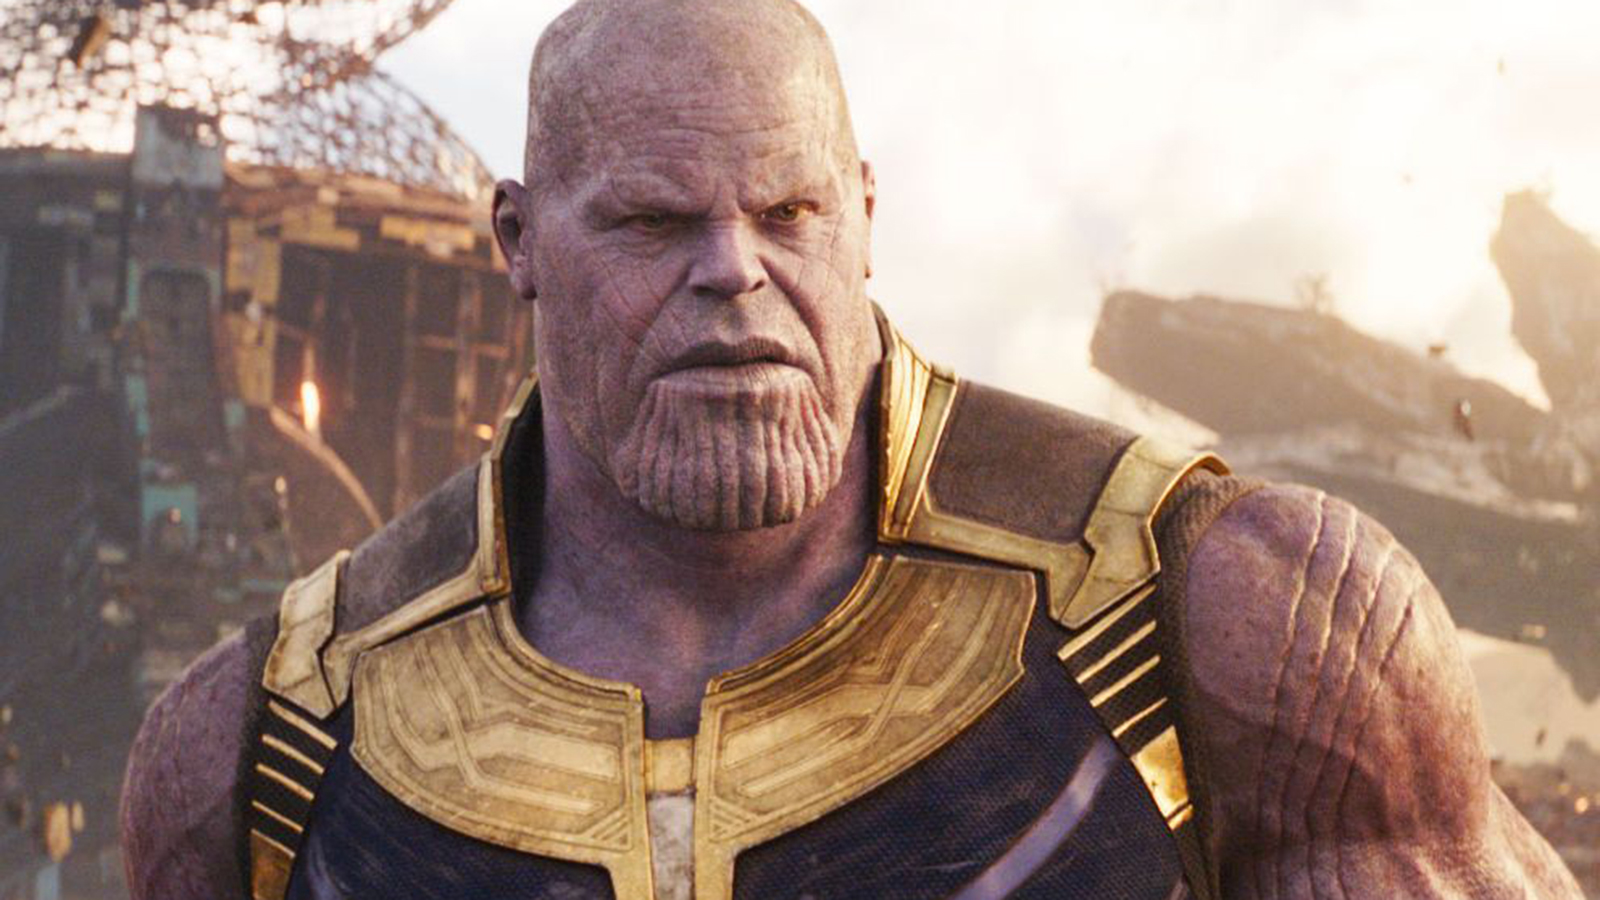 Josh Brolin as Thanos in Avengers